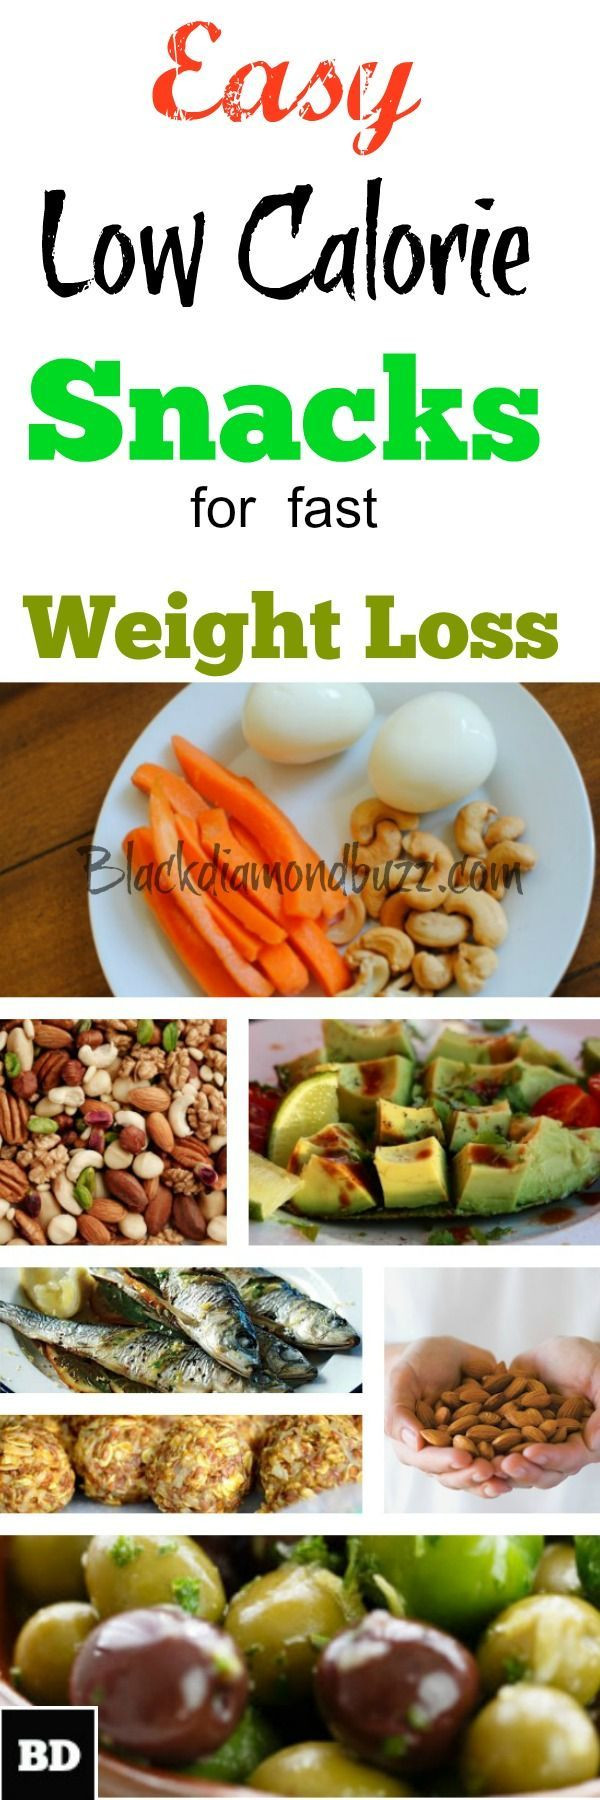 Are Pretzels Healthy For Weight Loss  Best 25 Snacks for weight loss ideas on Pinterest